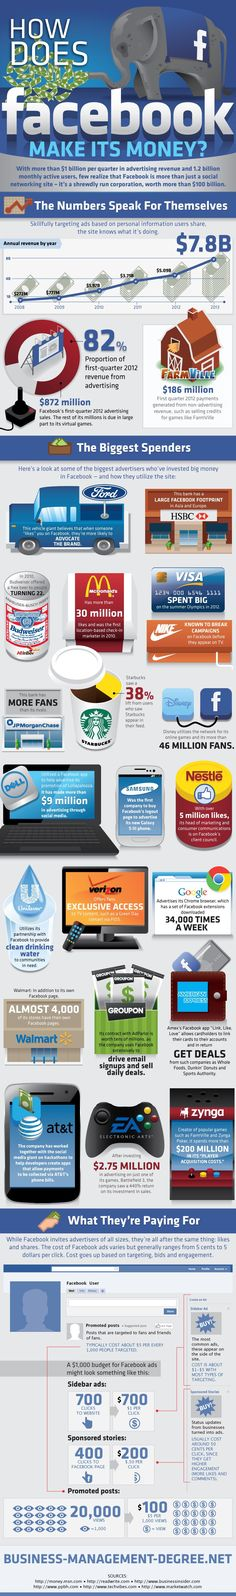 How does FaceBook make its money #infografia #infographic #socialmedia